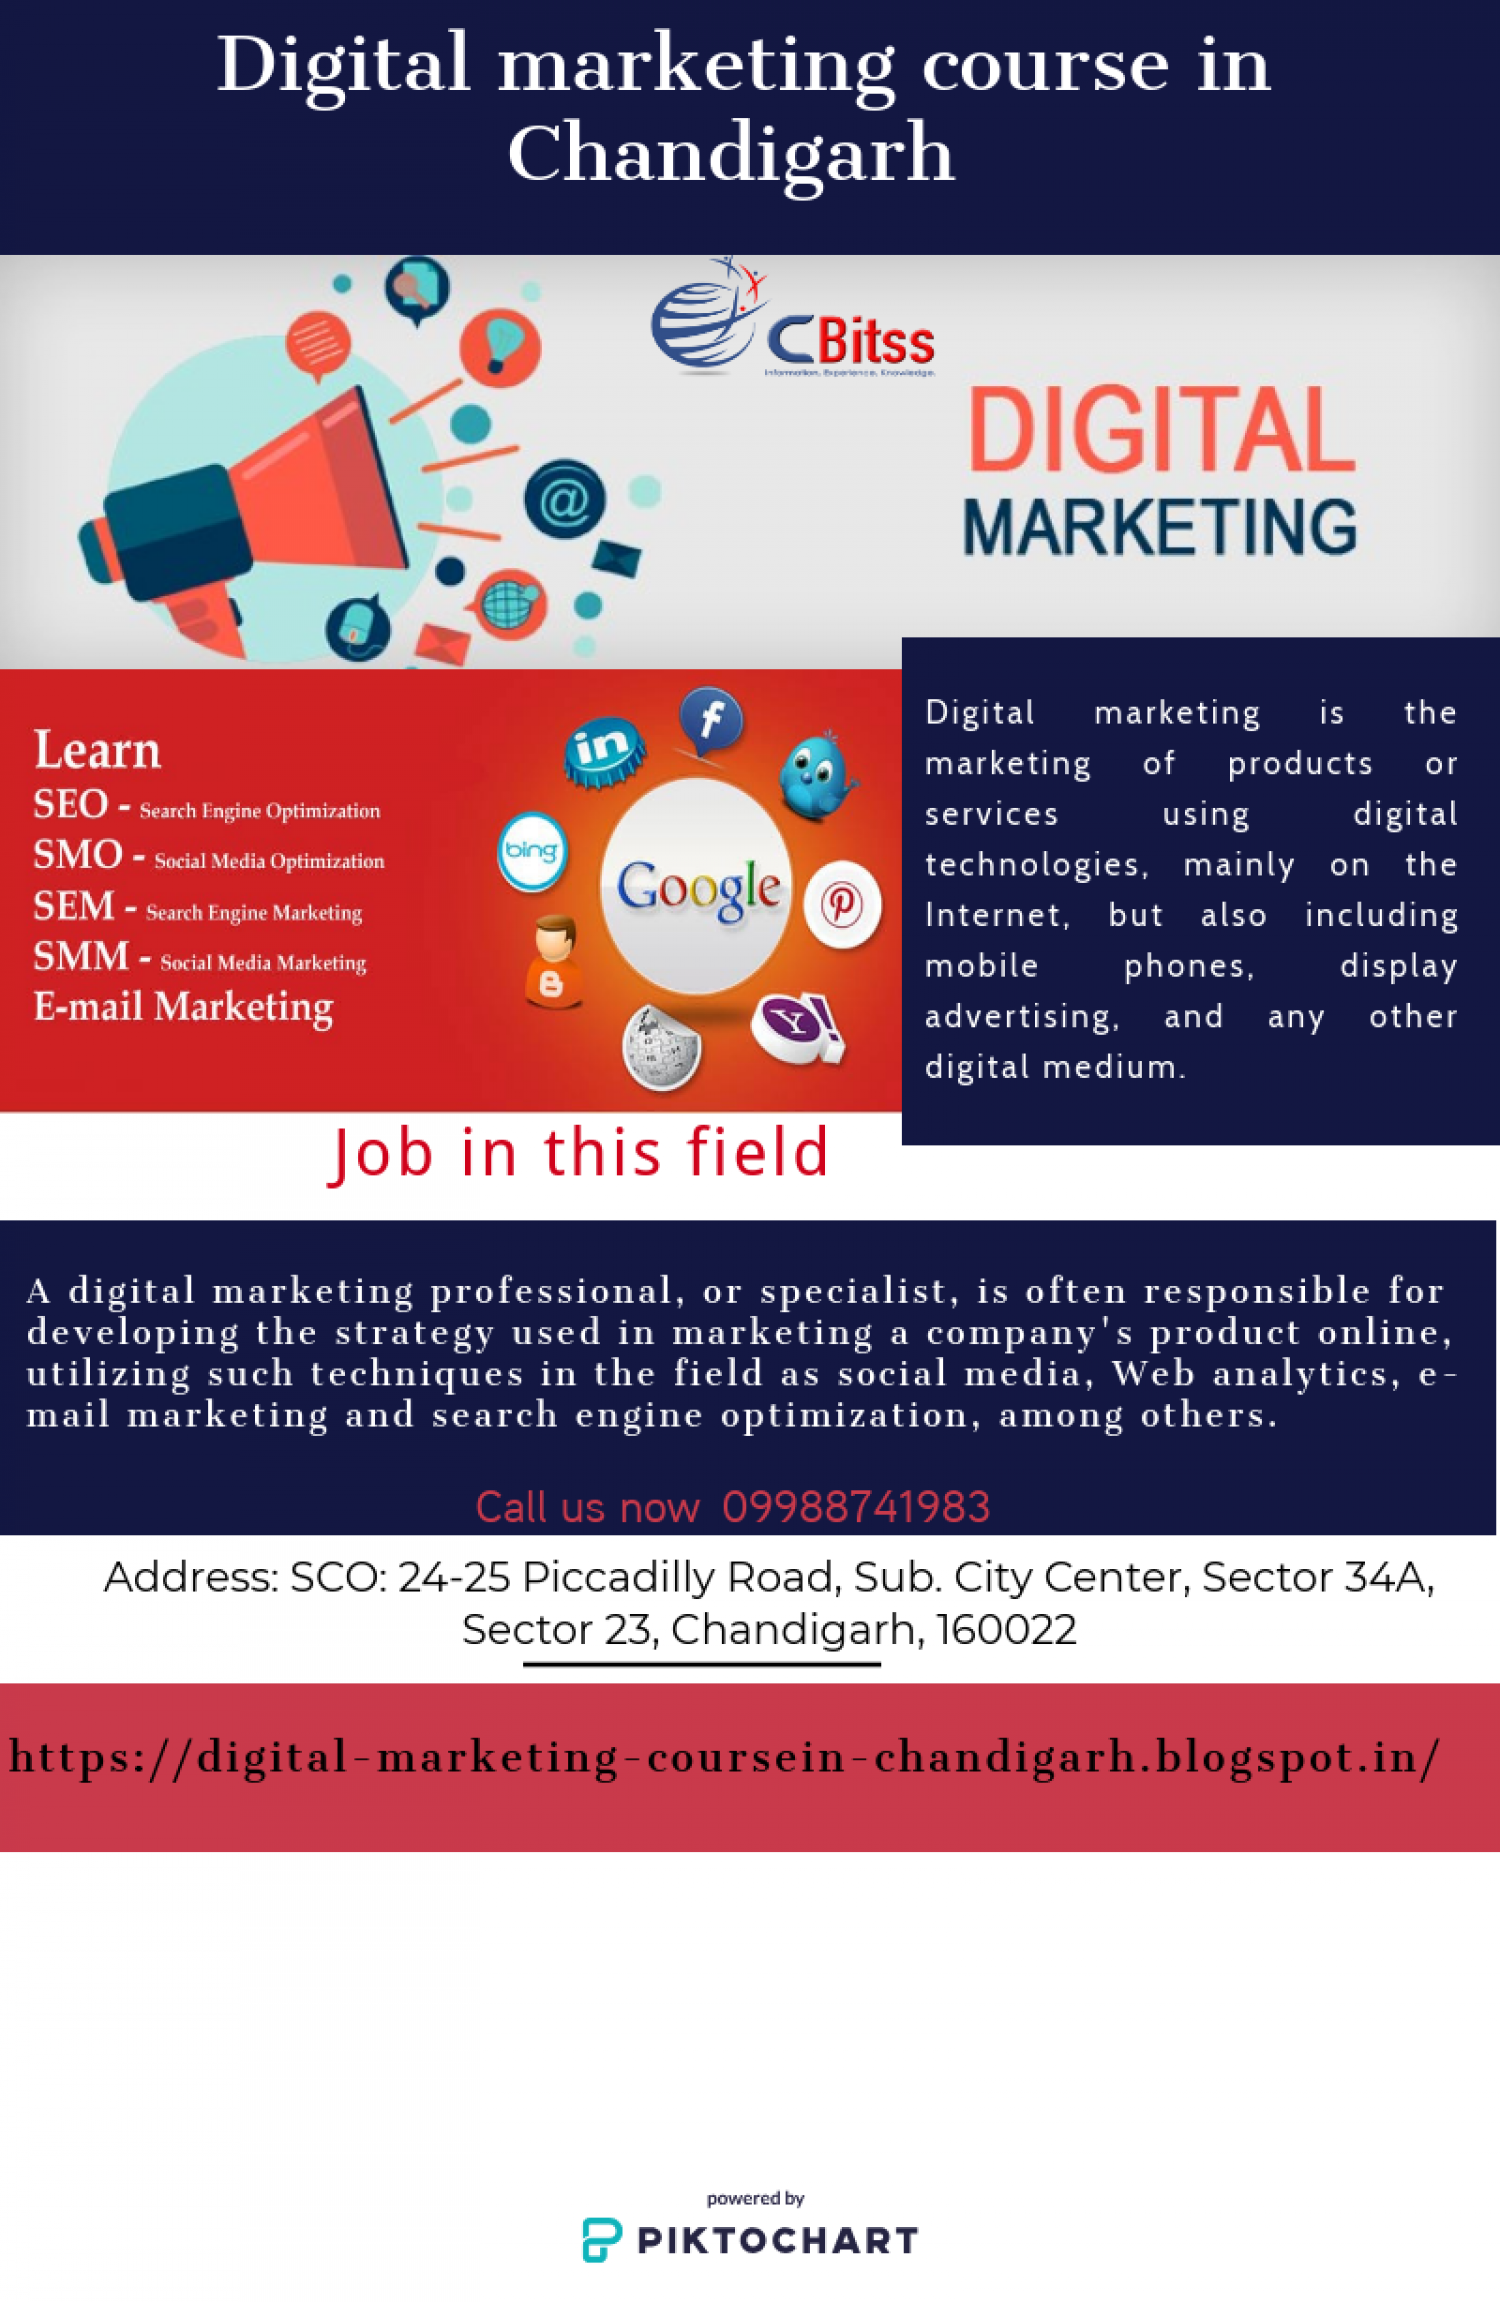 Digital Marketing course in Chandigarh Infographic